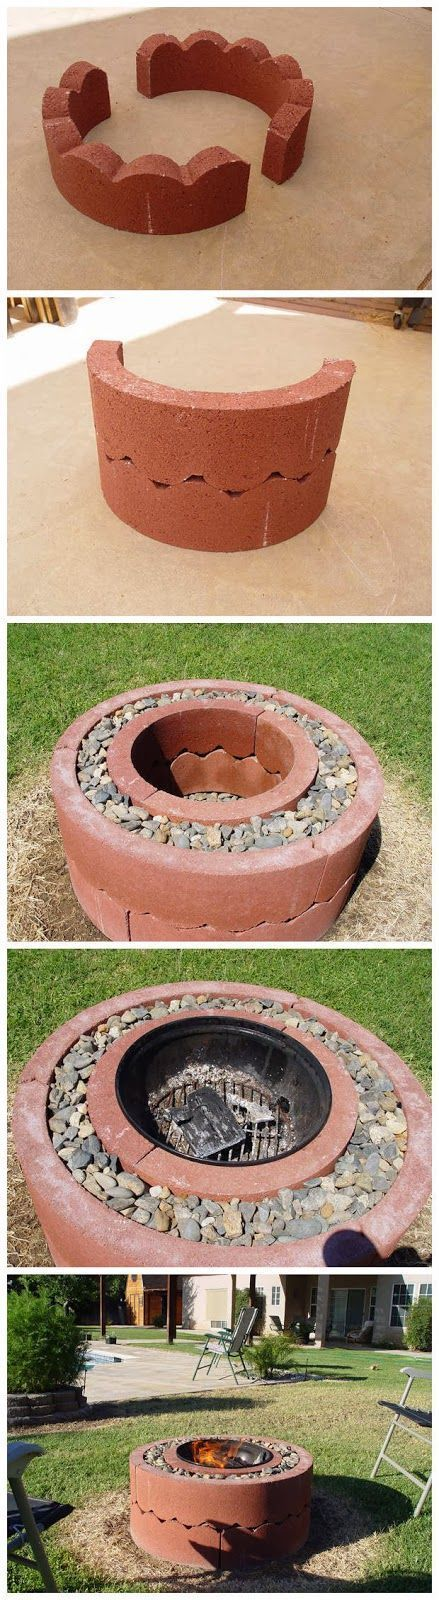 $50 fire pit using concrete tree rings. What a great idea.